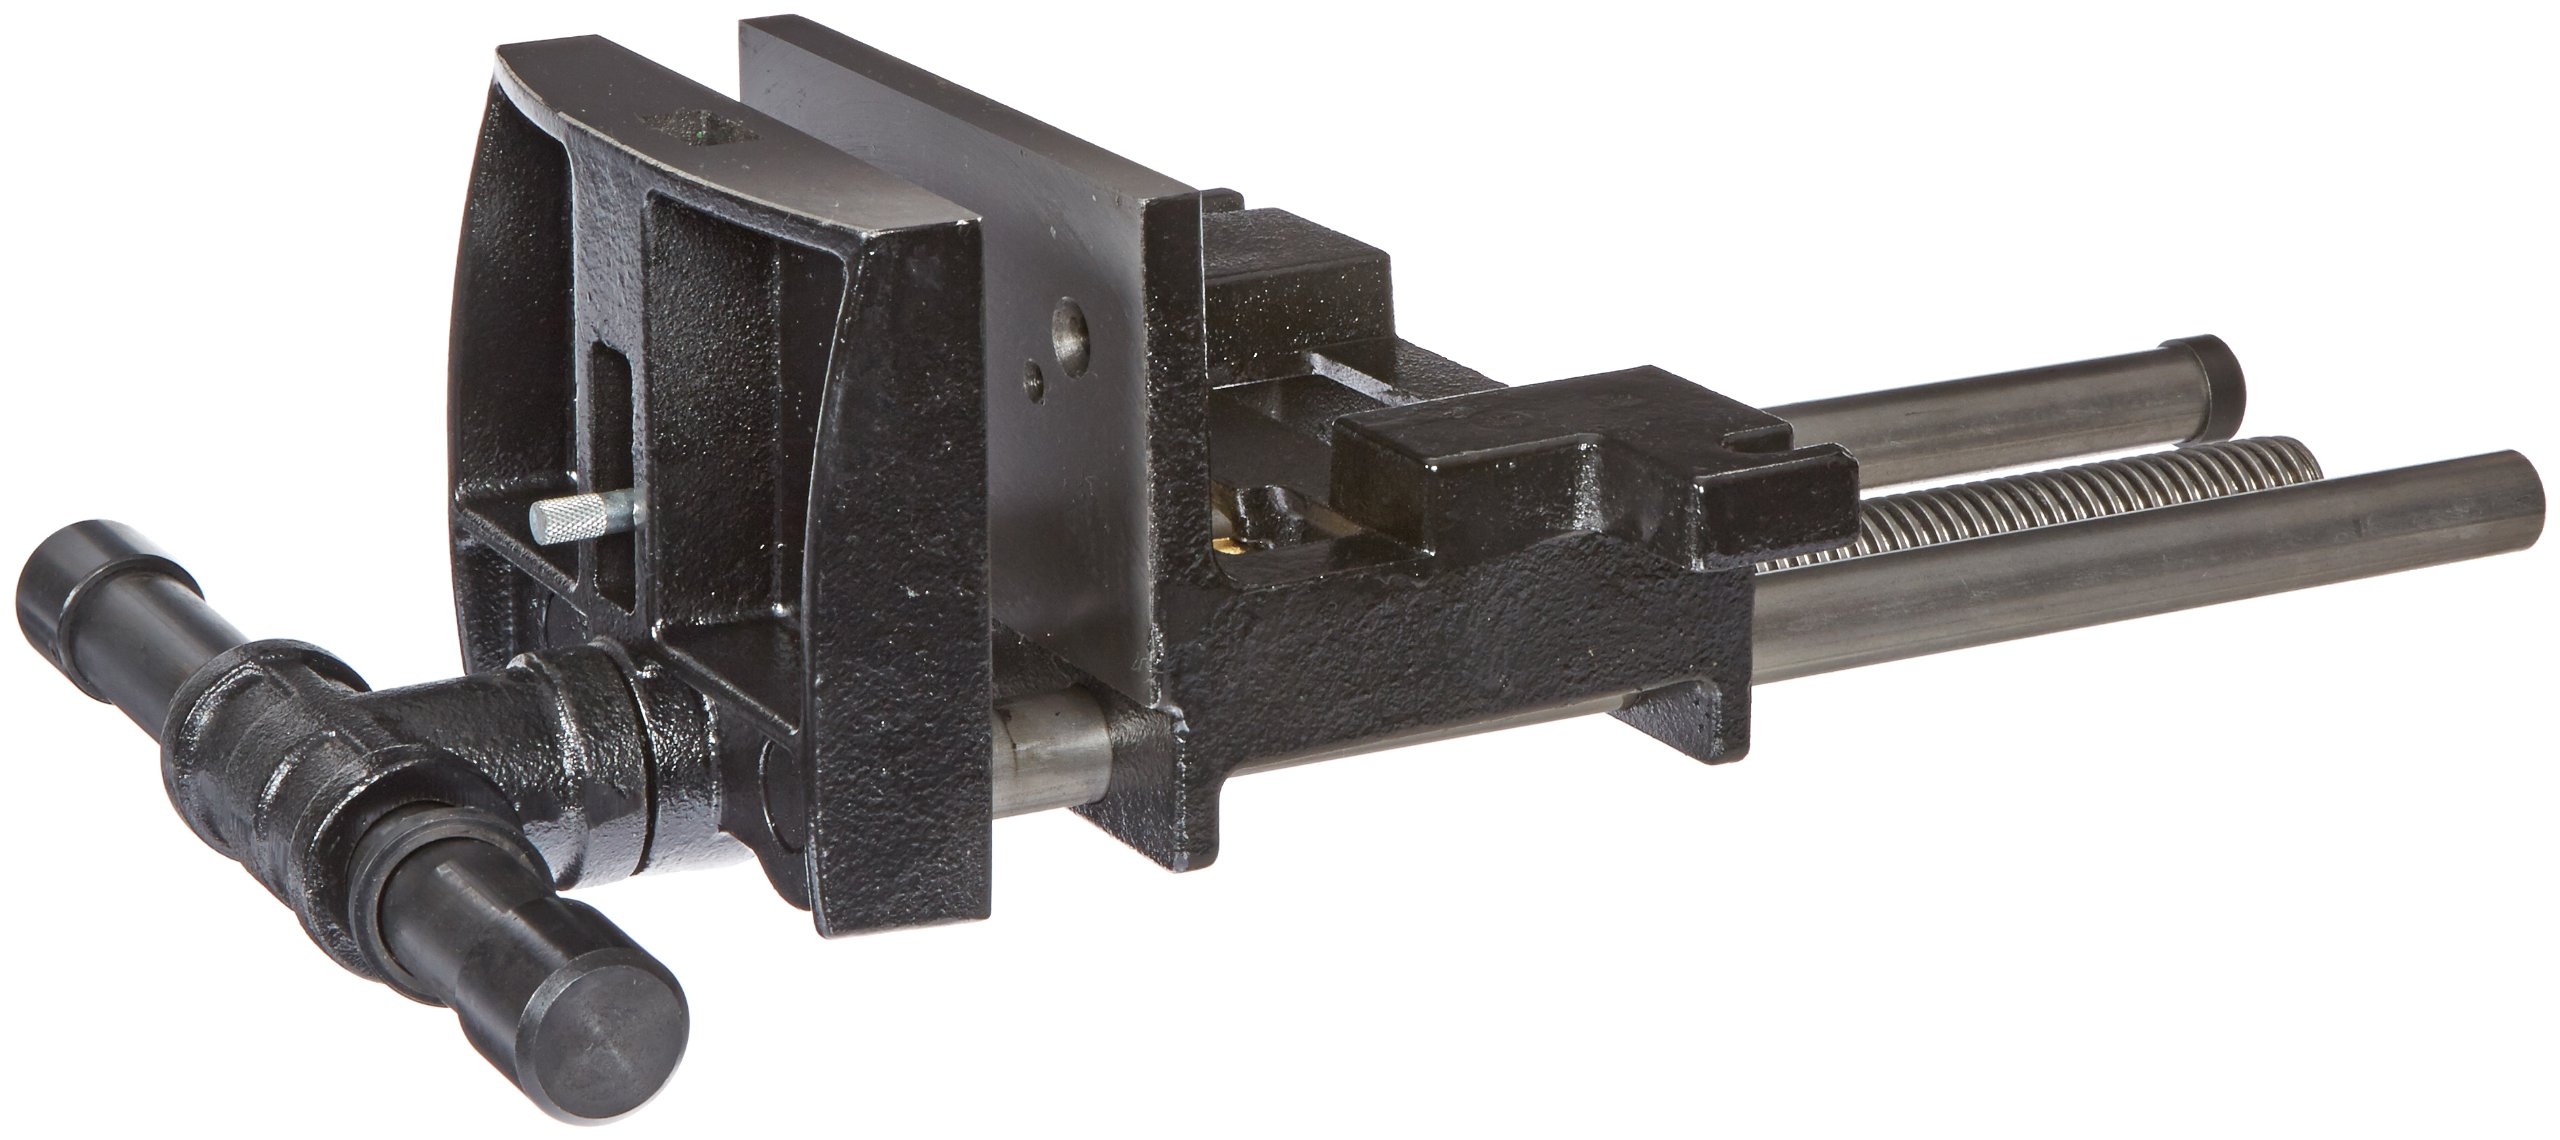 Yost Vises 7WW-DI 7'' Heavy-Duty Ductile Iron Woodworker's Vise by Yost Tools